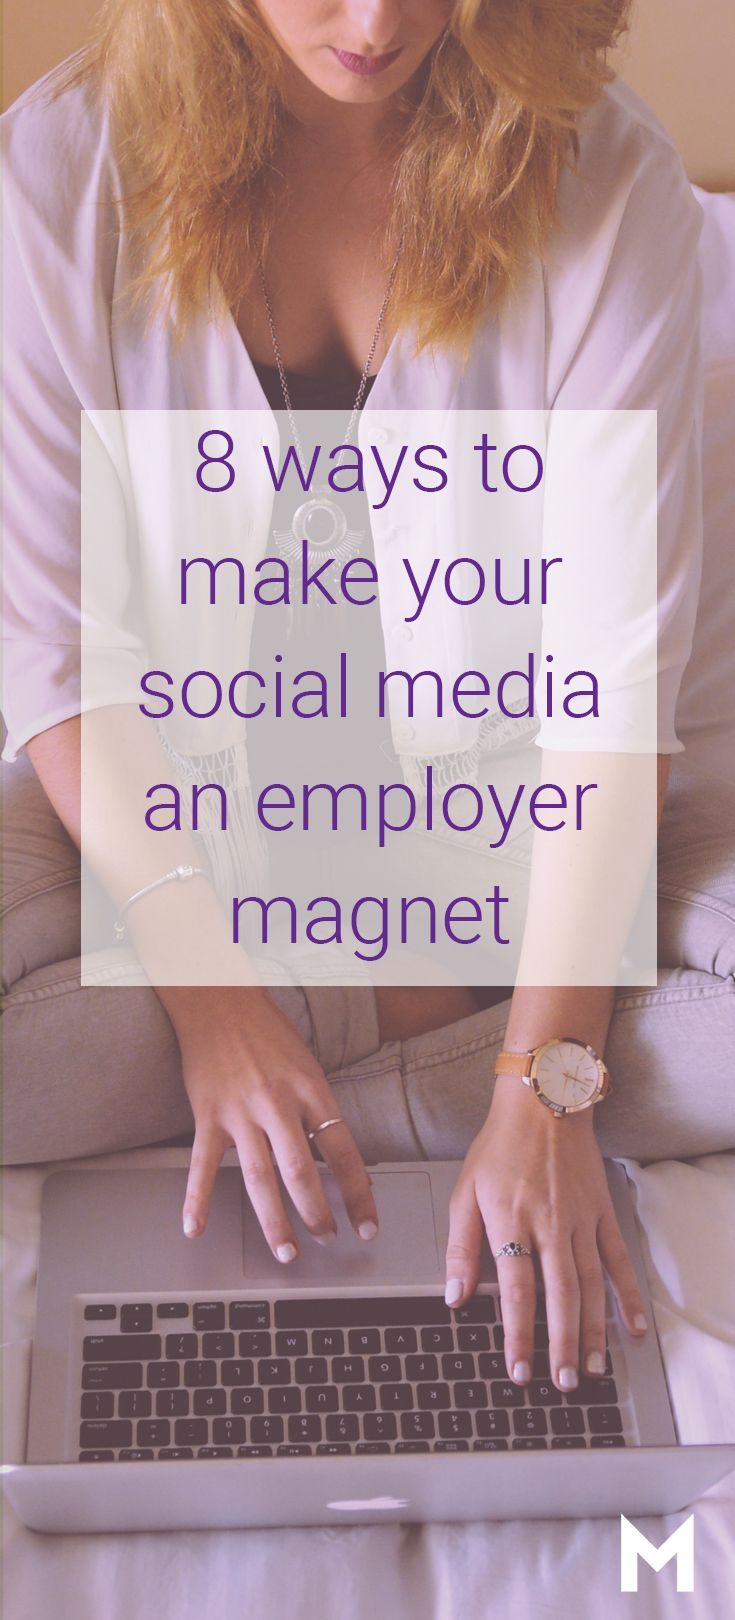 8 ways to make your social media profile an employer magnet job search tipssocial - Job Hunting Tips For Job Hunting Strategies